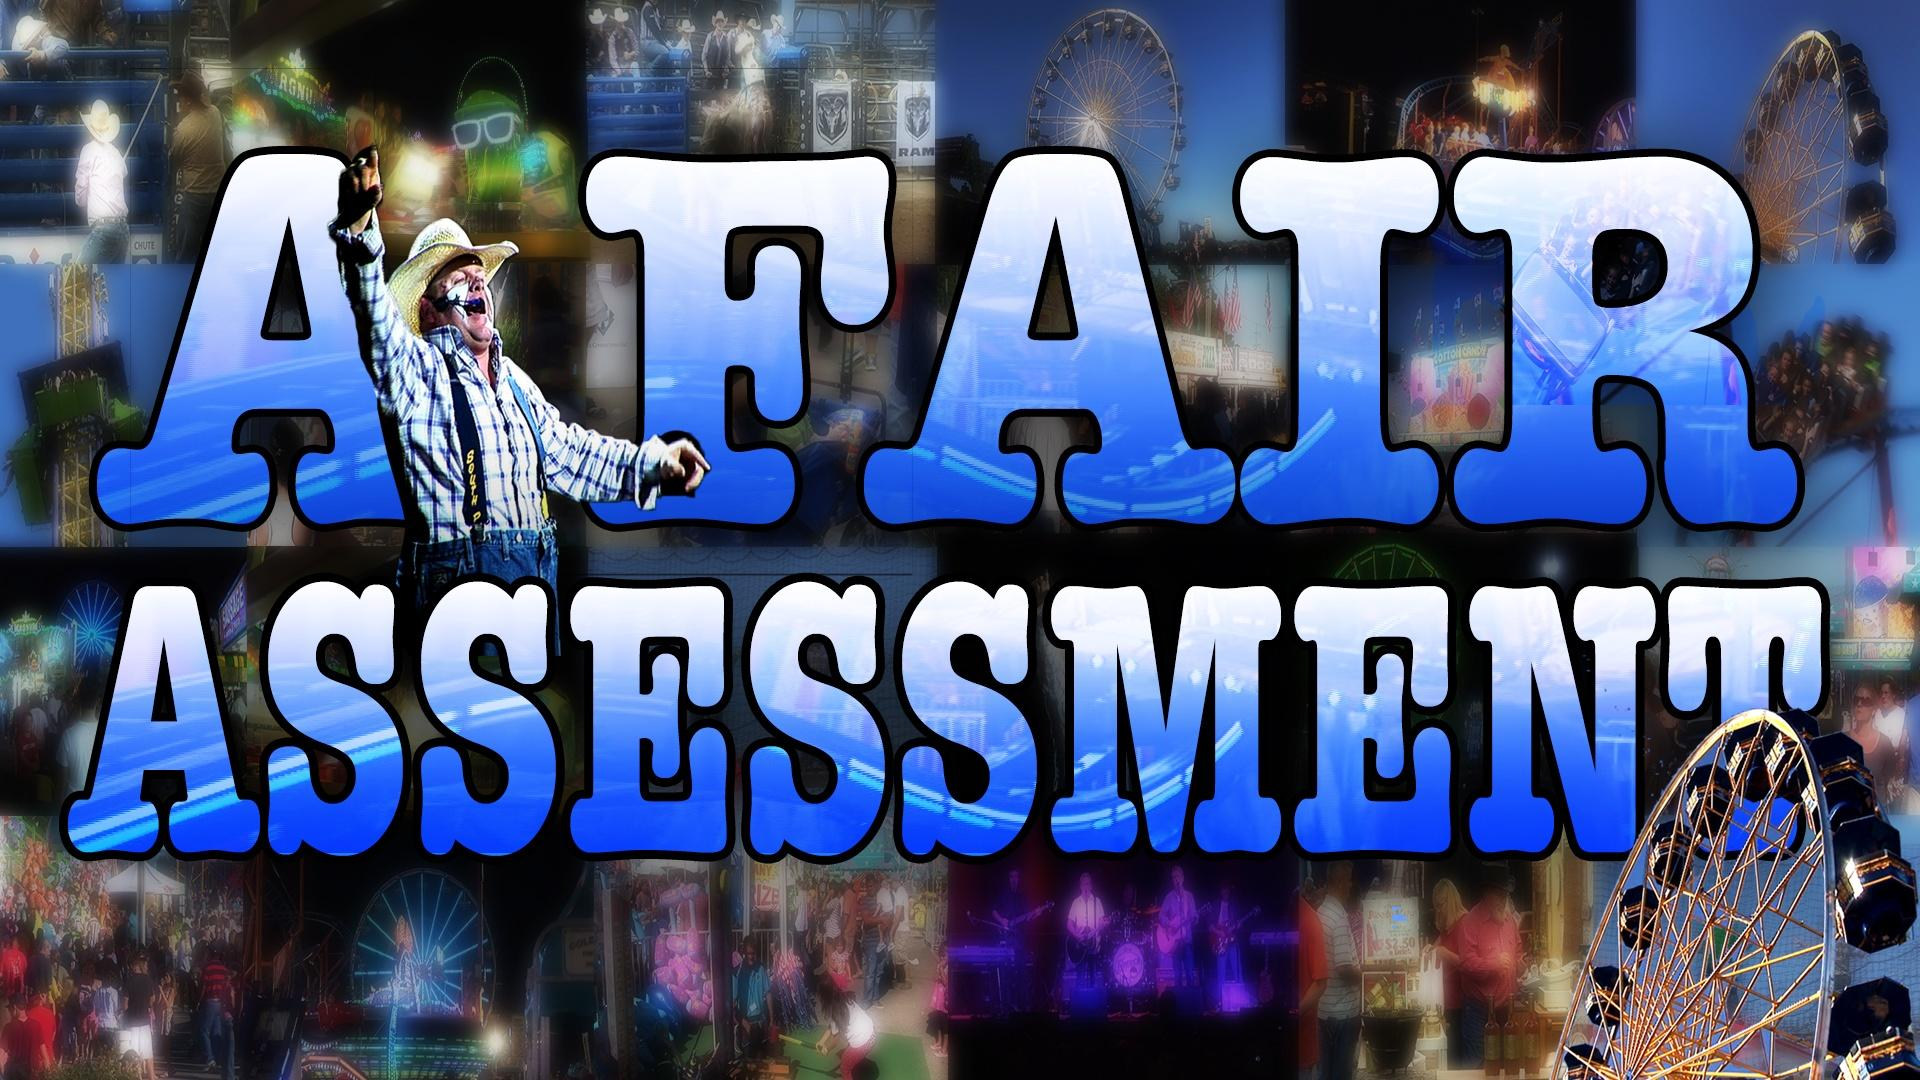 Video 1504 a fair assessment watch gallery online for Oeta schedule